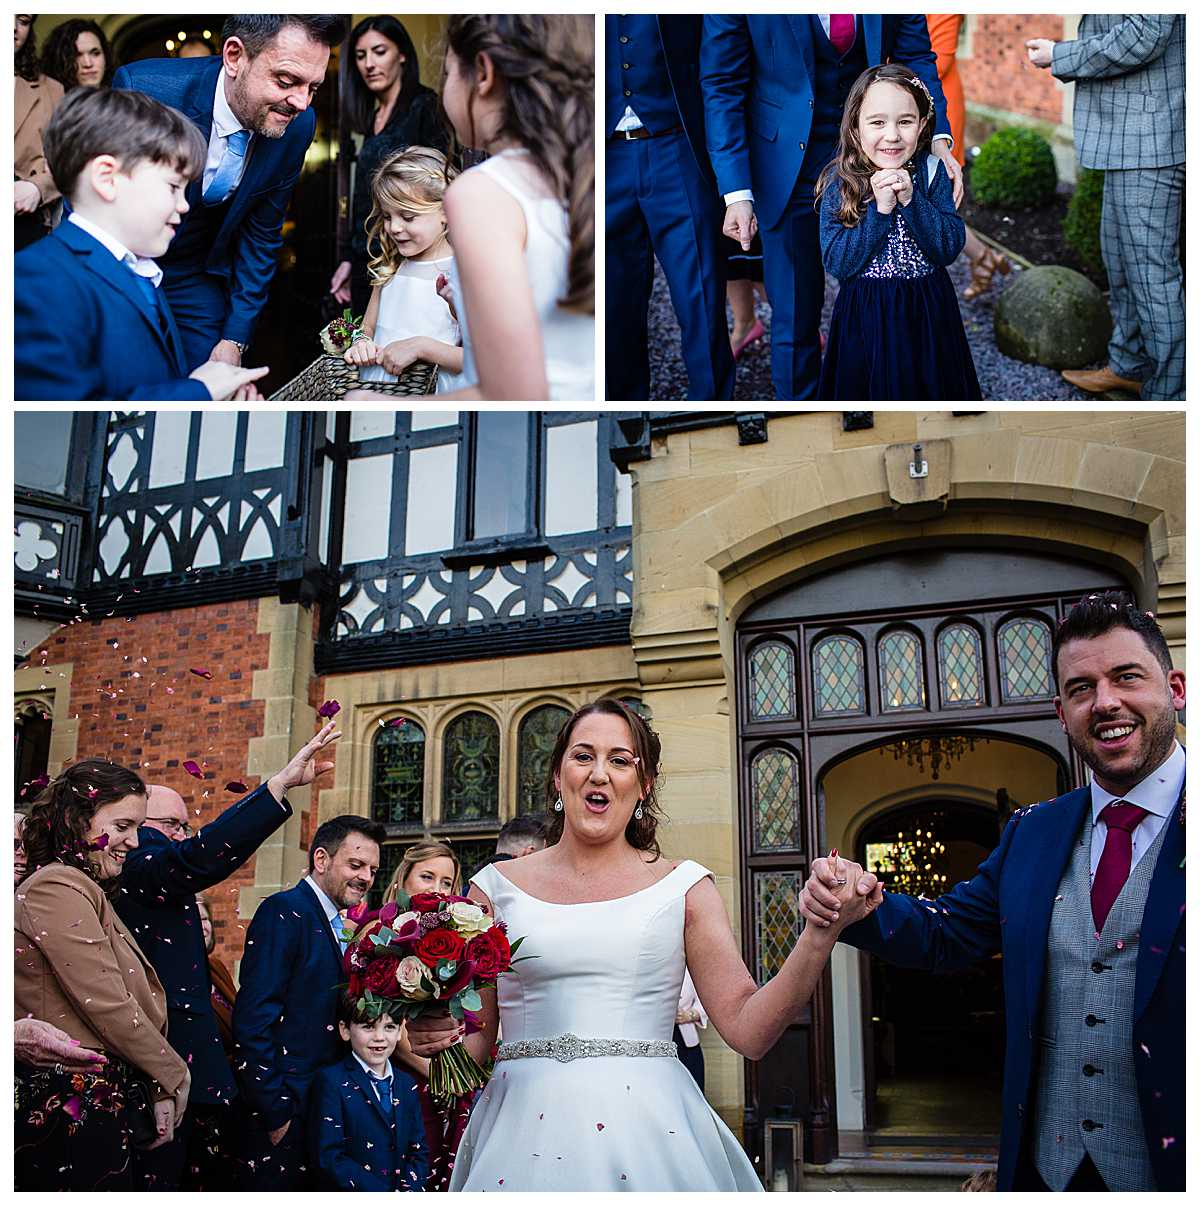 flower girls handing out confetti in the doorway at tyn dwr hall wedding llangollen and confetti being thrown at the happy couple